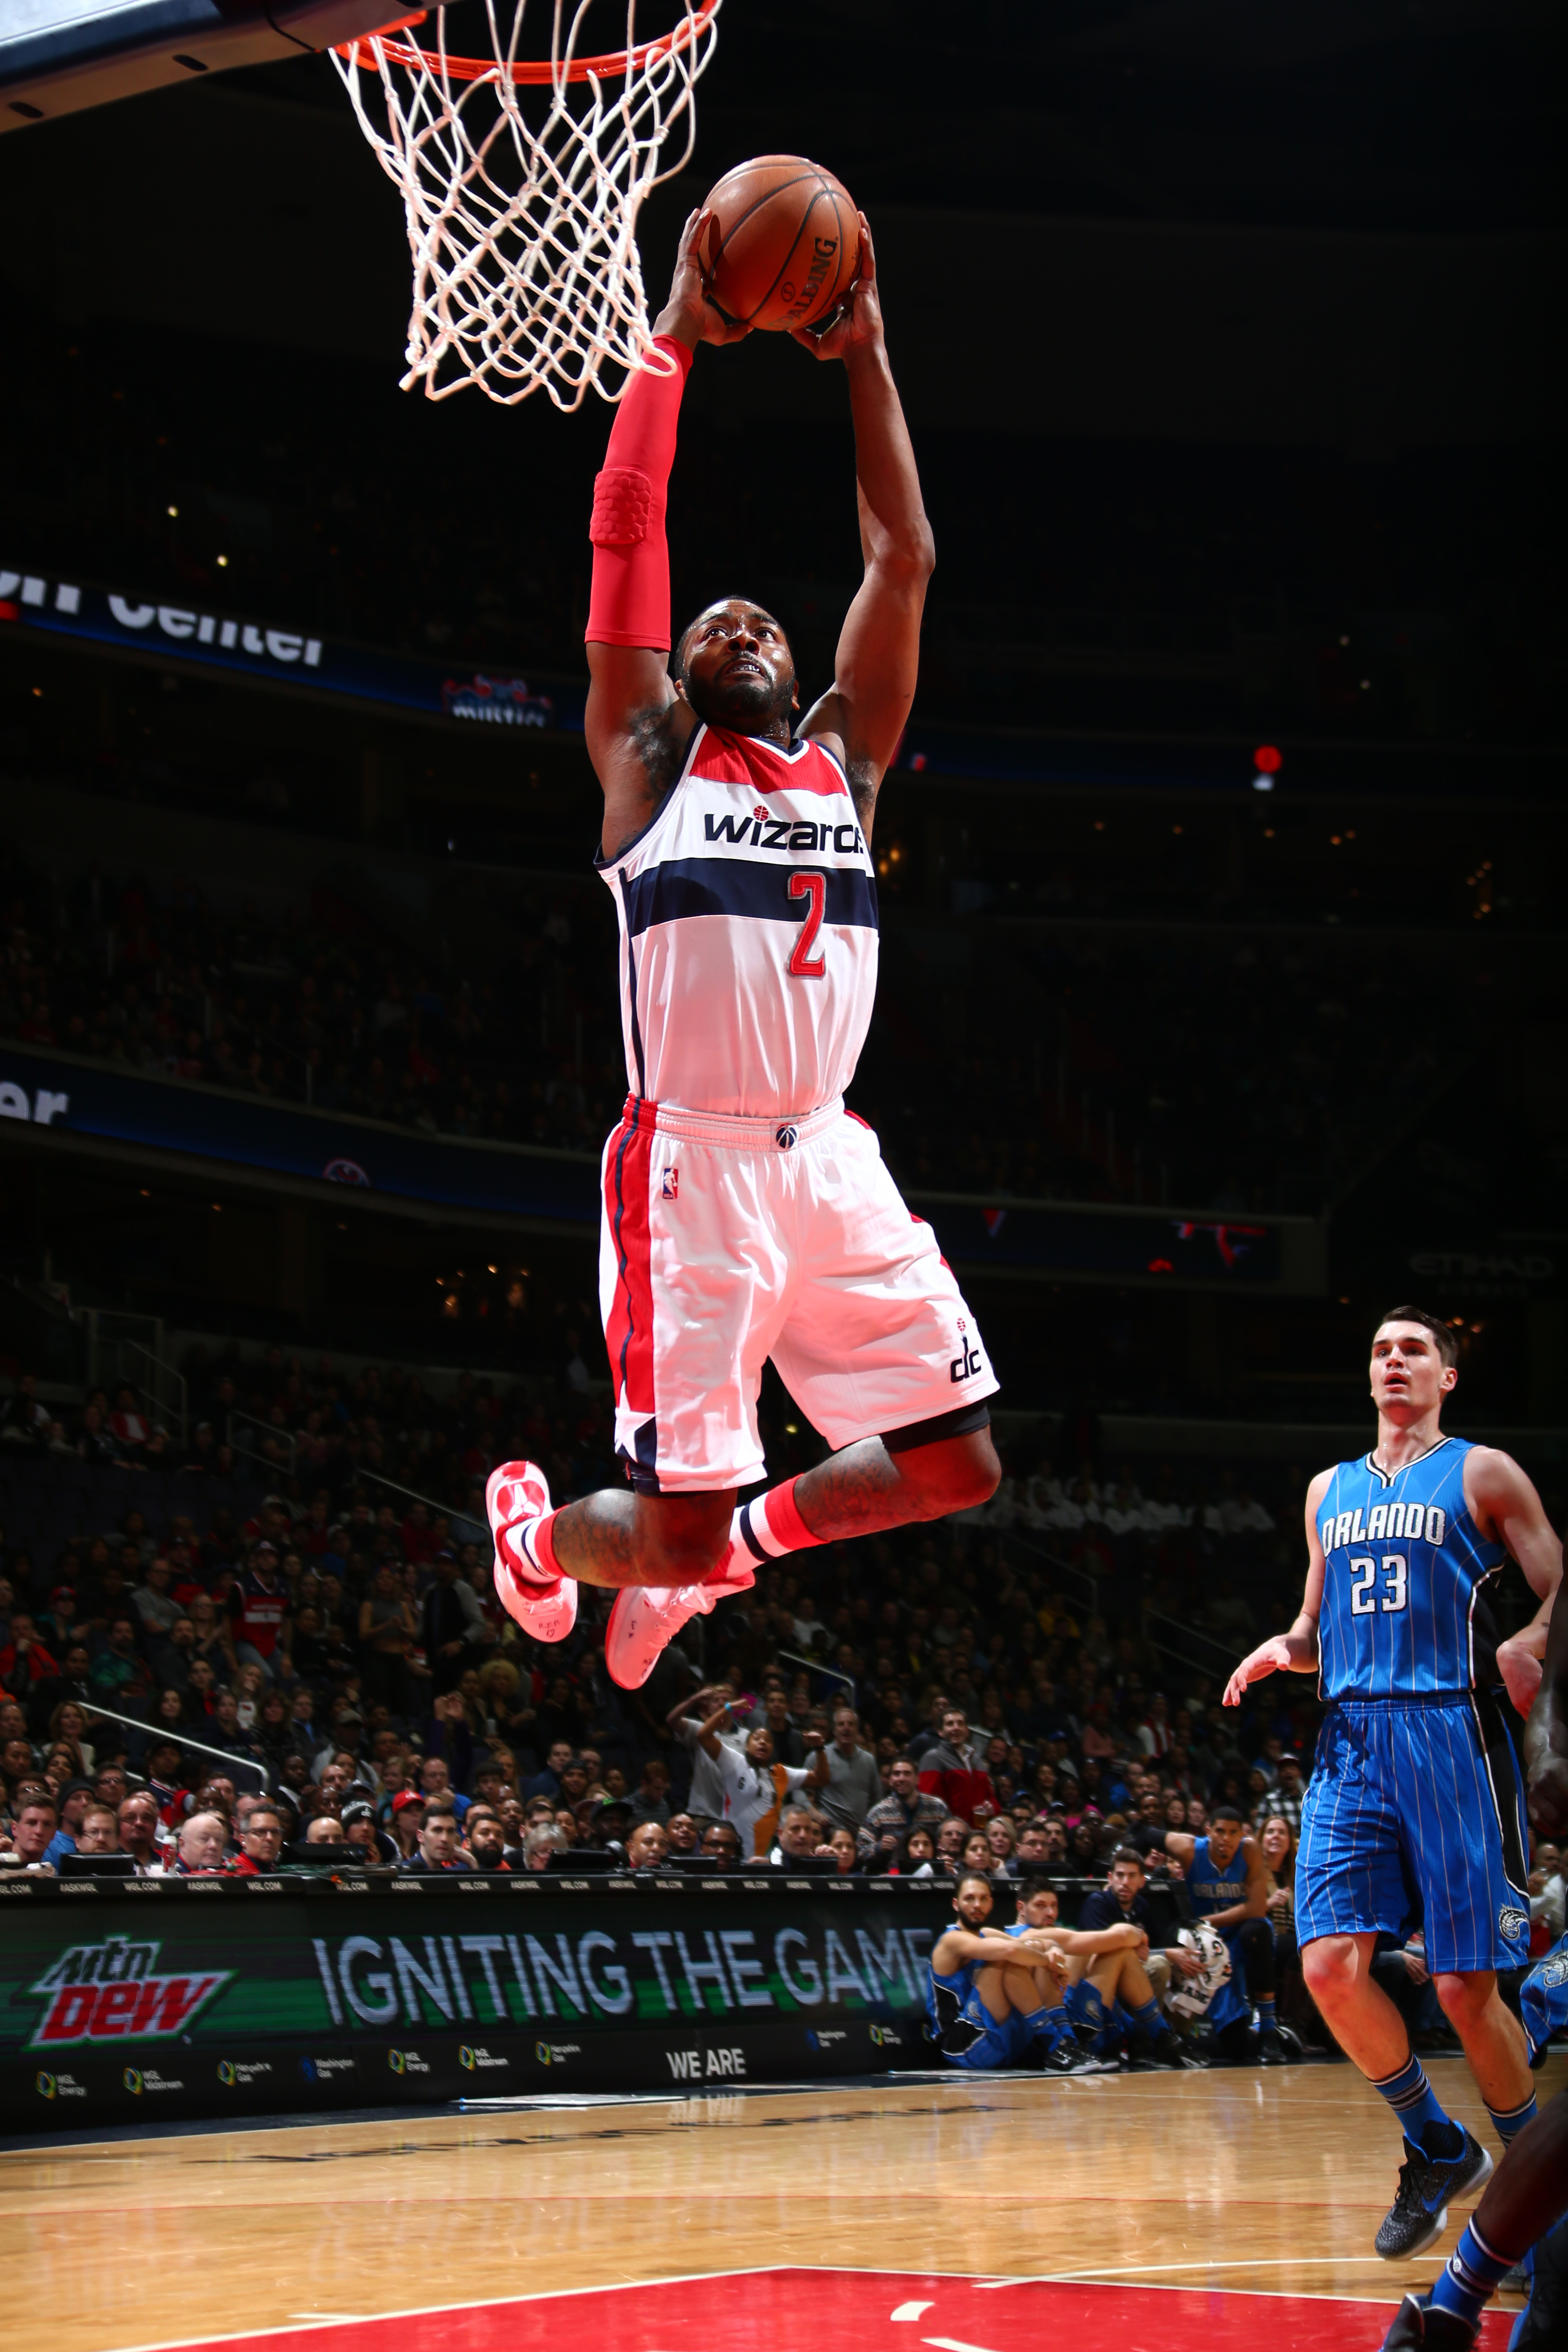 WASHINGTON, DC - JANUARY 1: John Wall #2 of the Washington Wizards goes for the dunk against the Orlando Magic during the game on January 1, 2016 at Verizon Center in Washington, District of Columbia. (Photo by Ned Dishman/NBAE via Getty Images)